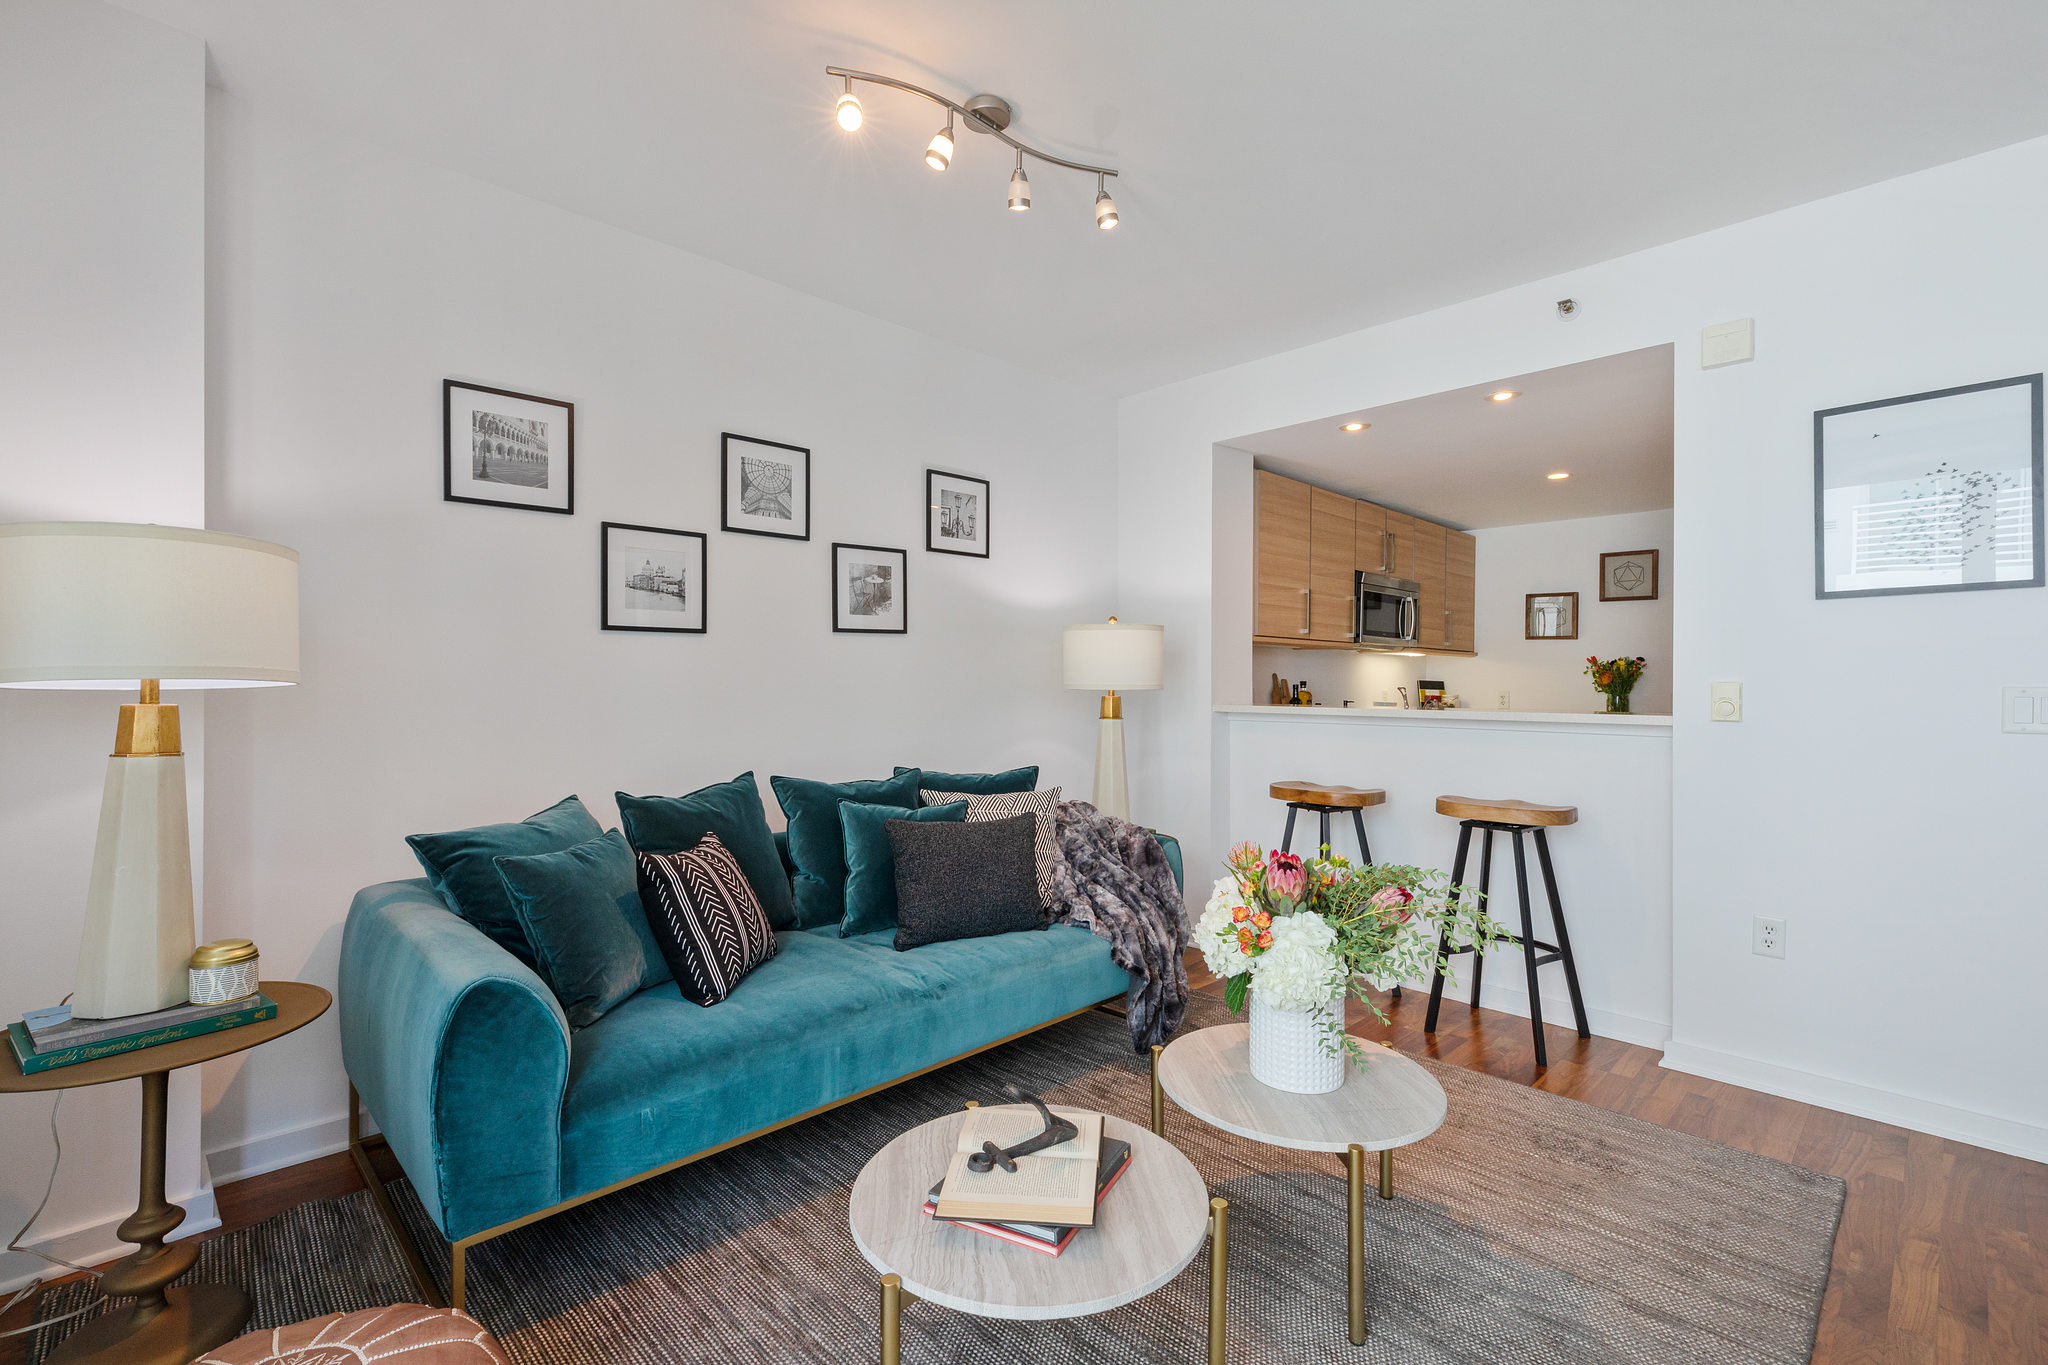 San Francisco Home - Living room that blue velvet couch and gallery wall